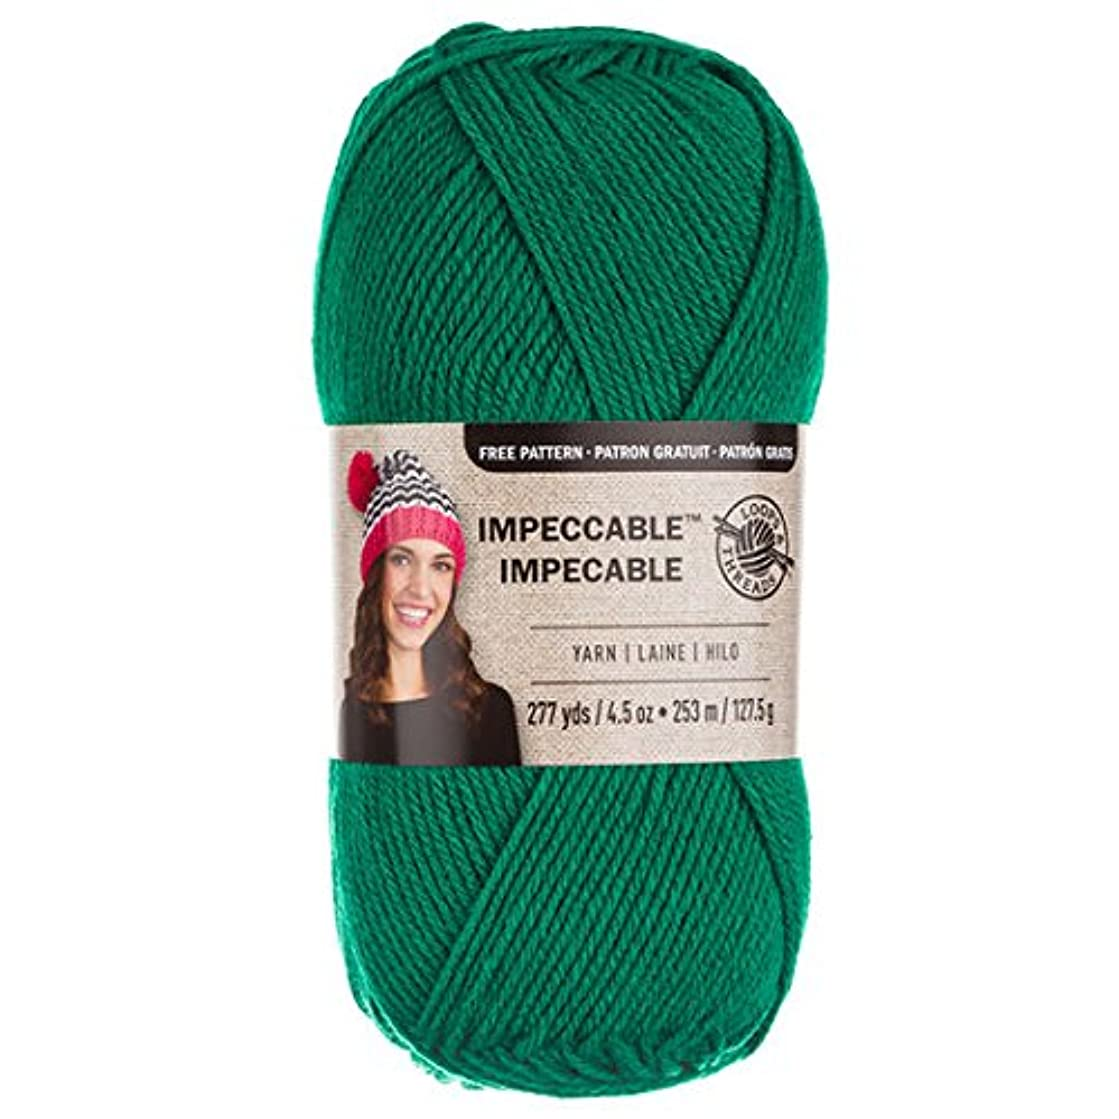 Loops & Threads Impeccable Yarn 4.5 oz. One Ball - Kelly Green